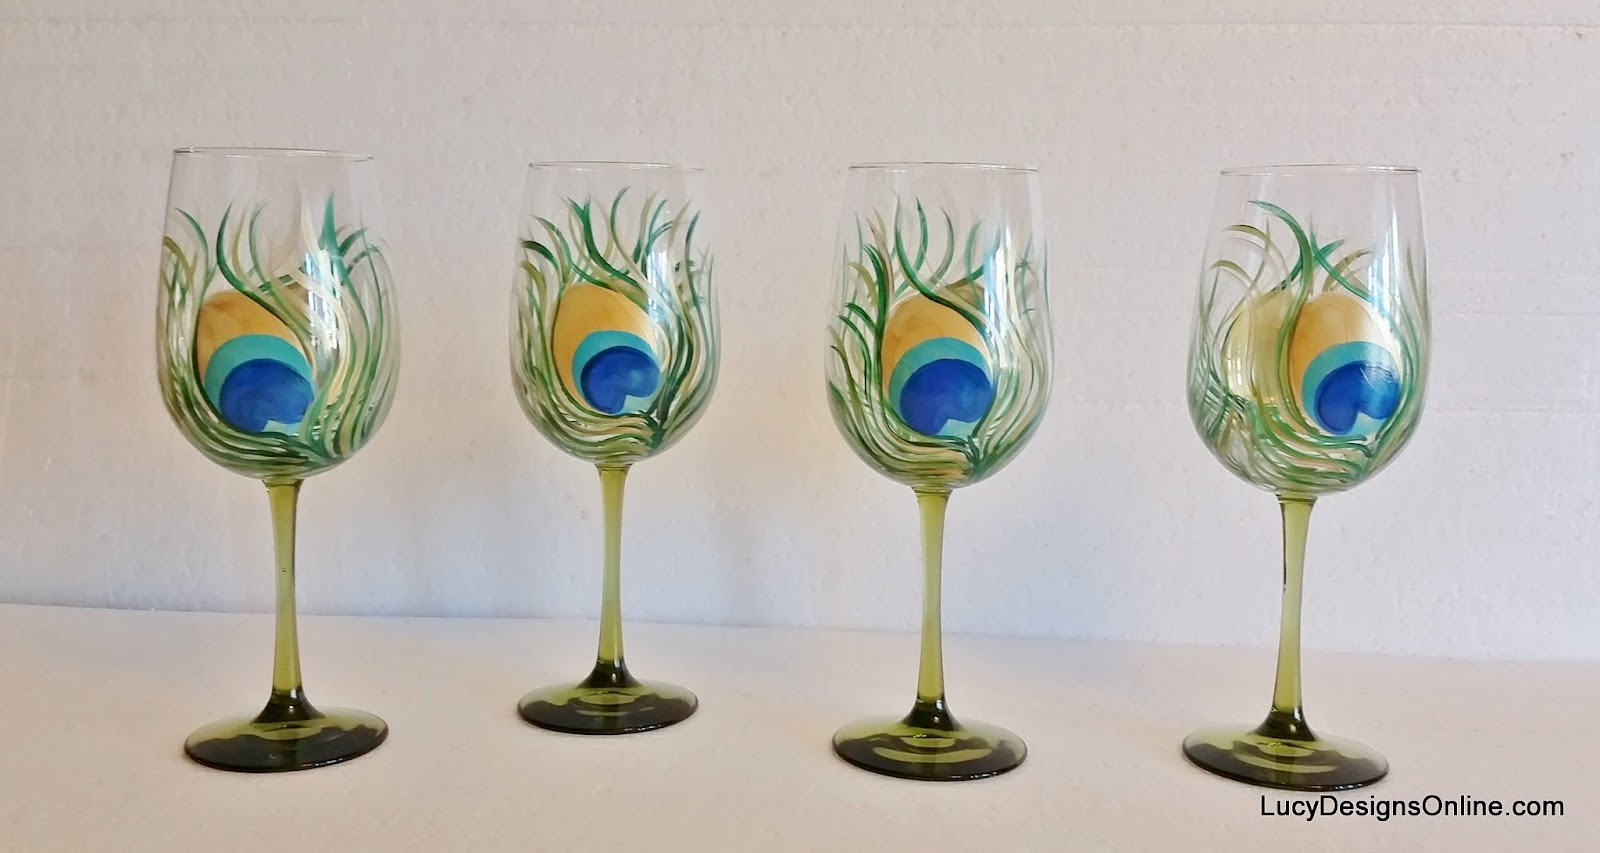 Small Stem Wine Glasses Diy Hand Painted Wine Glasses With Peacock Feather Design